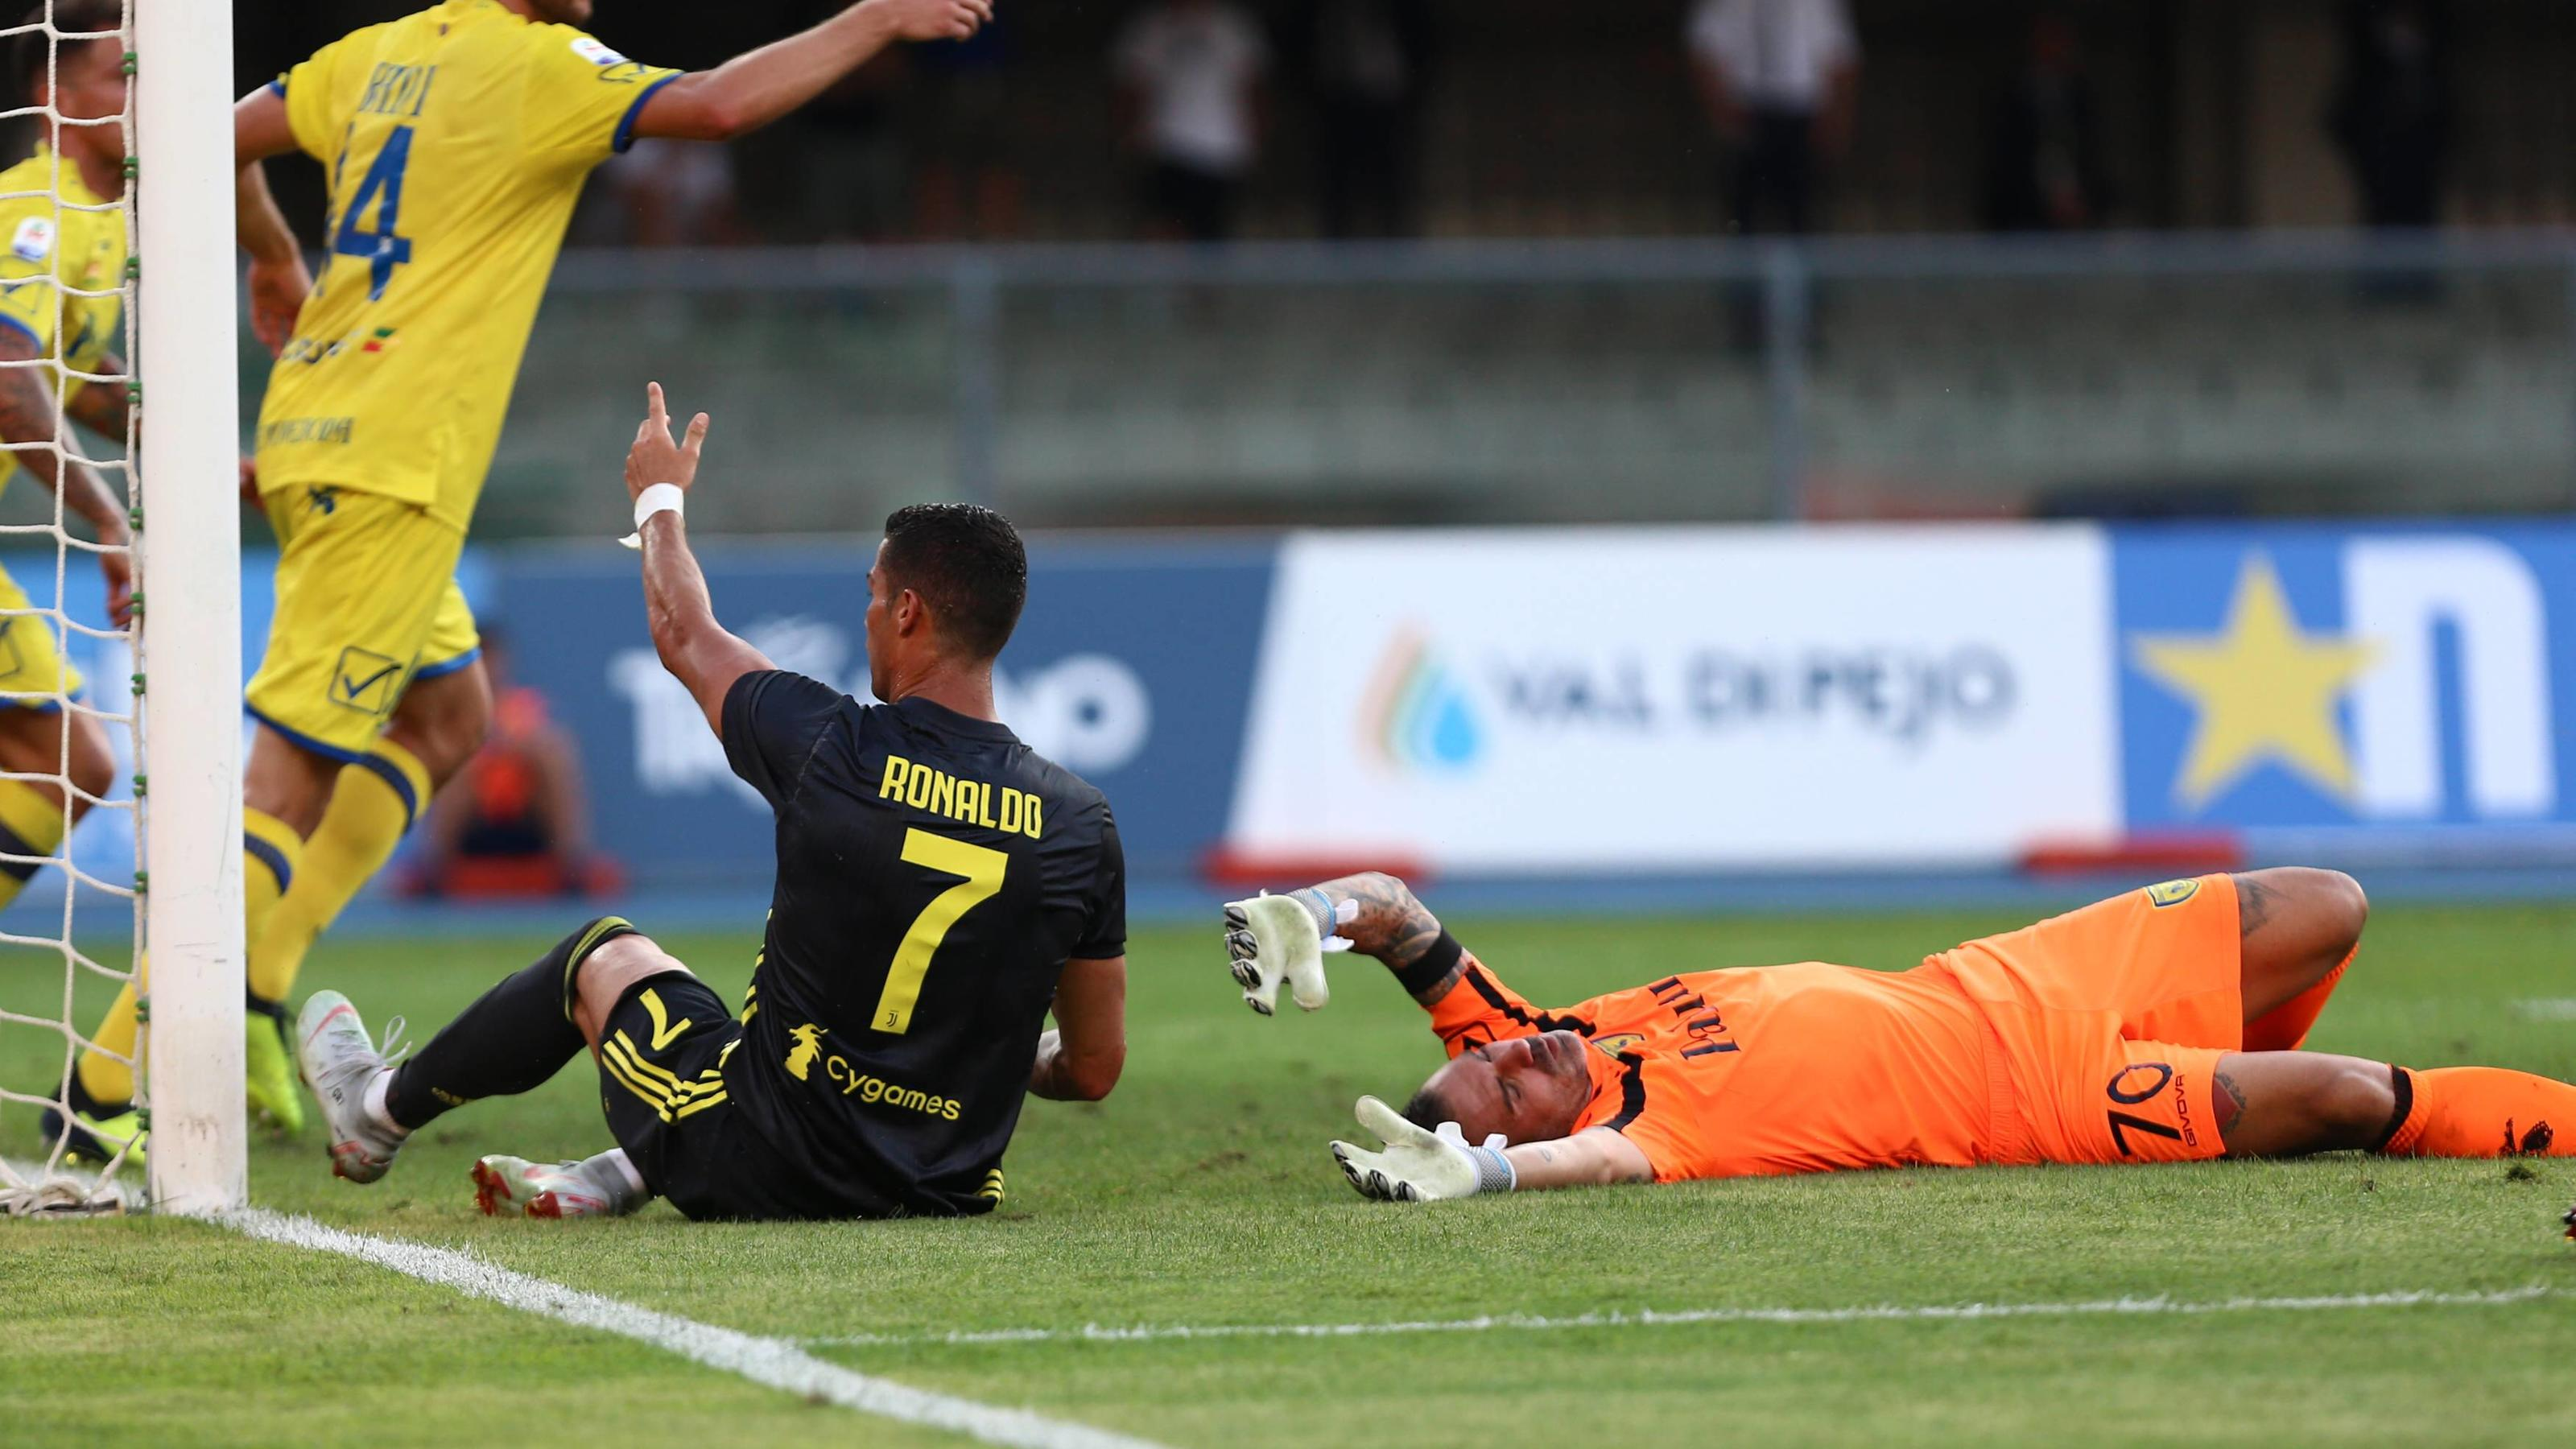 18th August 2018, Stadio Marcantonio Bentegodi, Verona, Italy&#x3B; Serie A football, Chievo versus Juventus&#x3B; Cristiano Ronaldo comes down heavily on Chievo goalkeeper Stefano Sorrentino who is knocked out in the 90th minute PUBLICATIONxINxGERxSUIxAUTxHUN